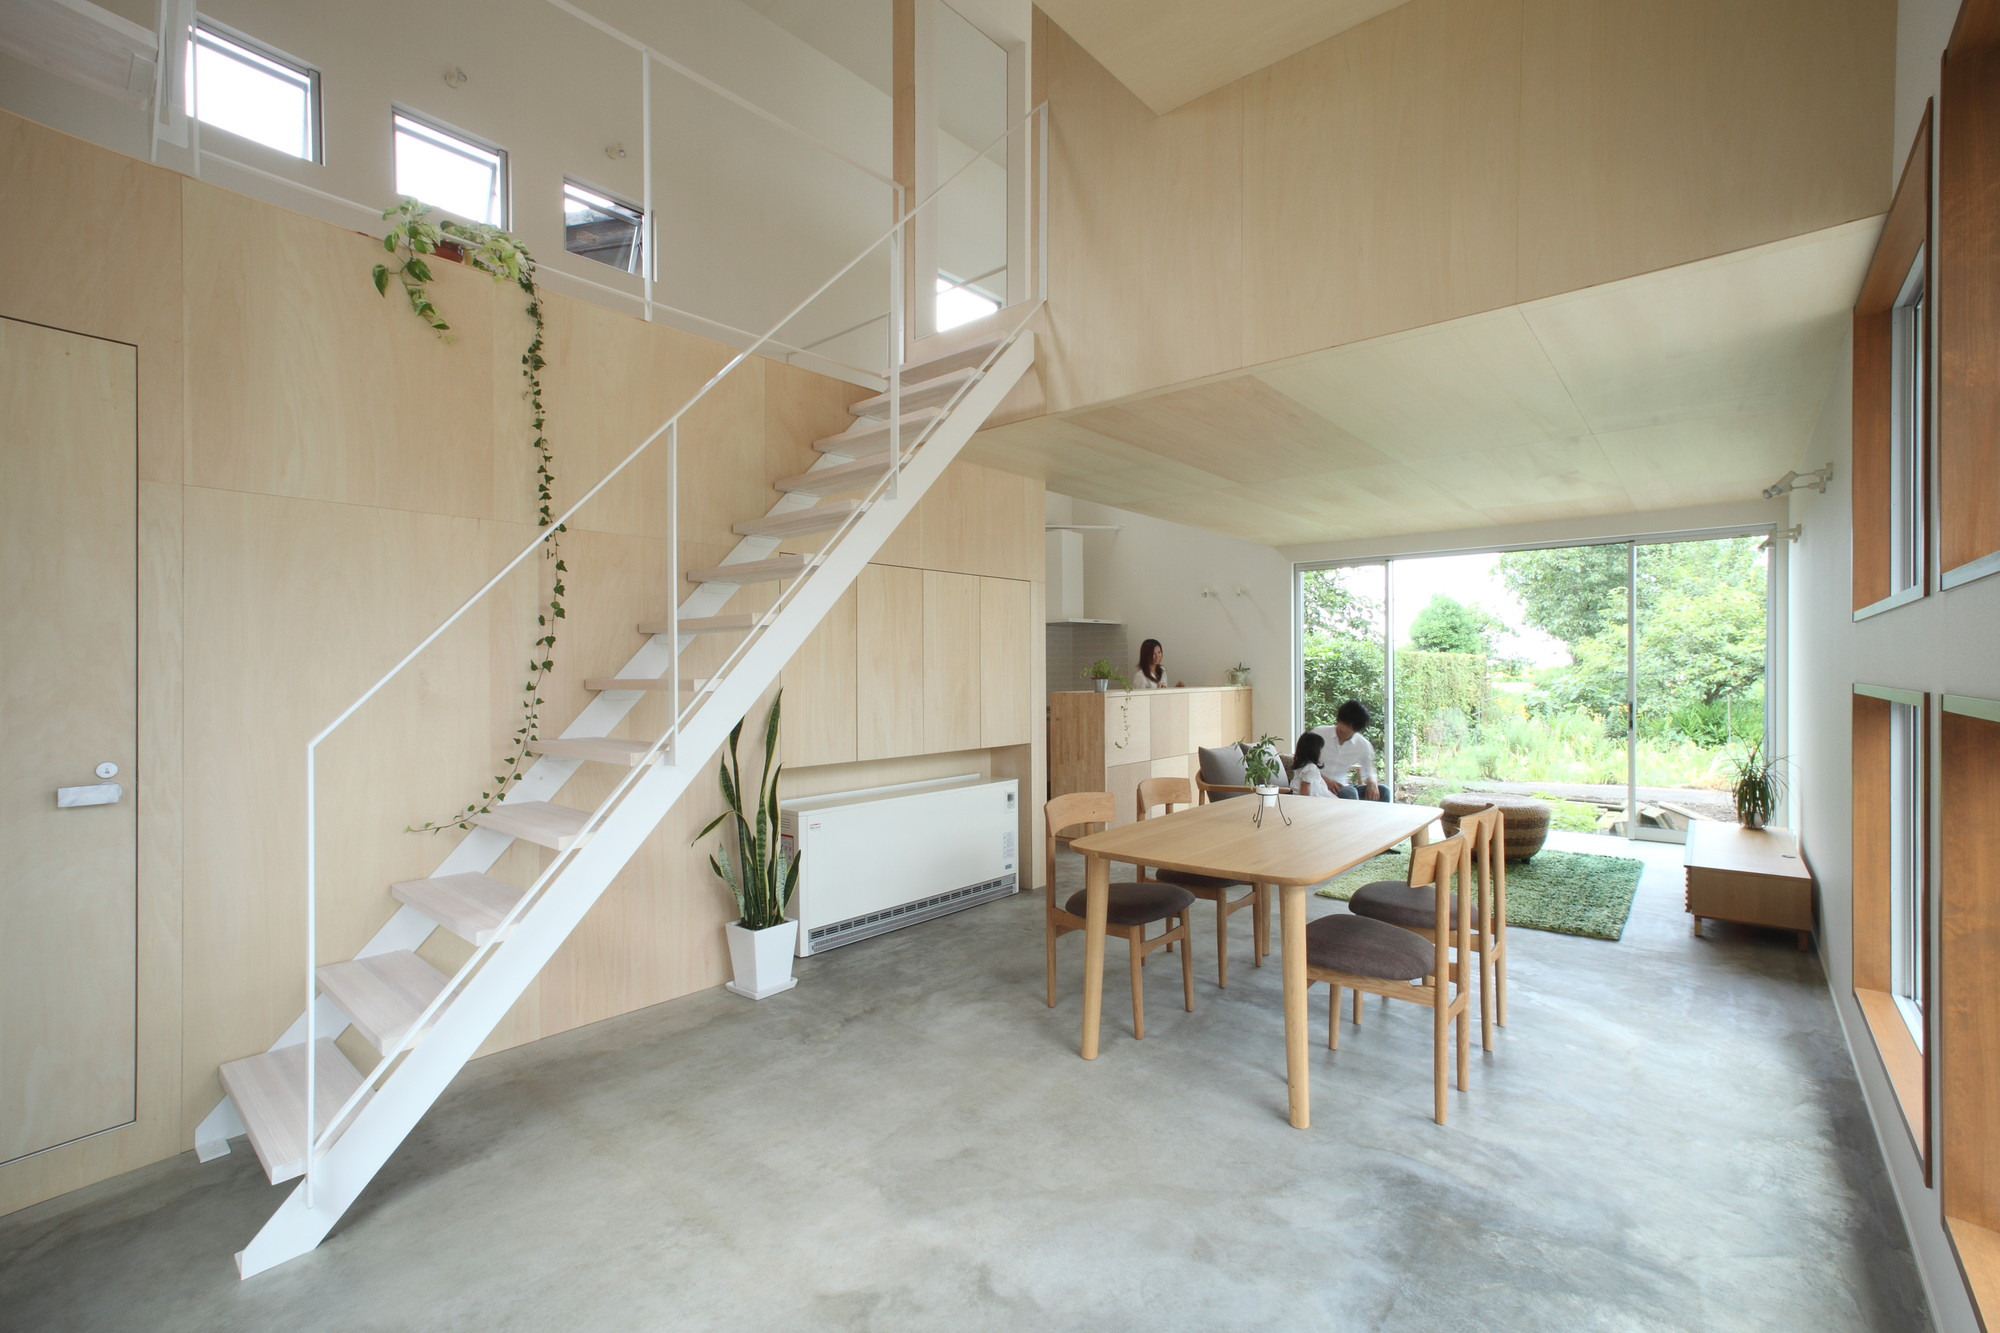 Azuchi House / ALTS Design Office, Courtesy of ALTS Design Office